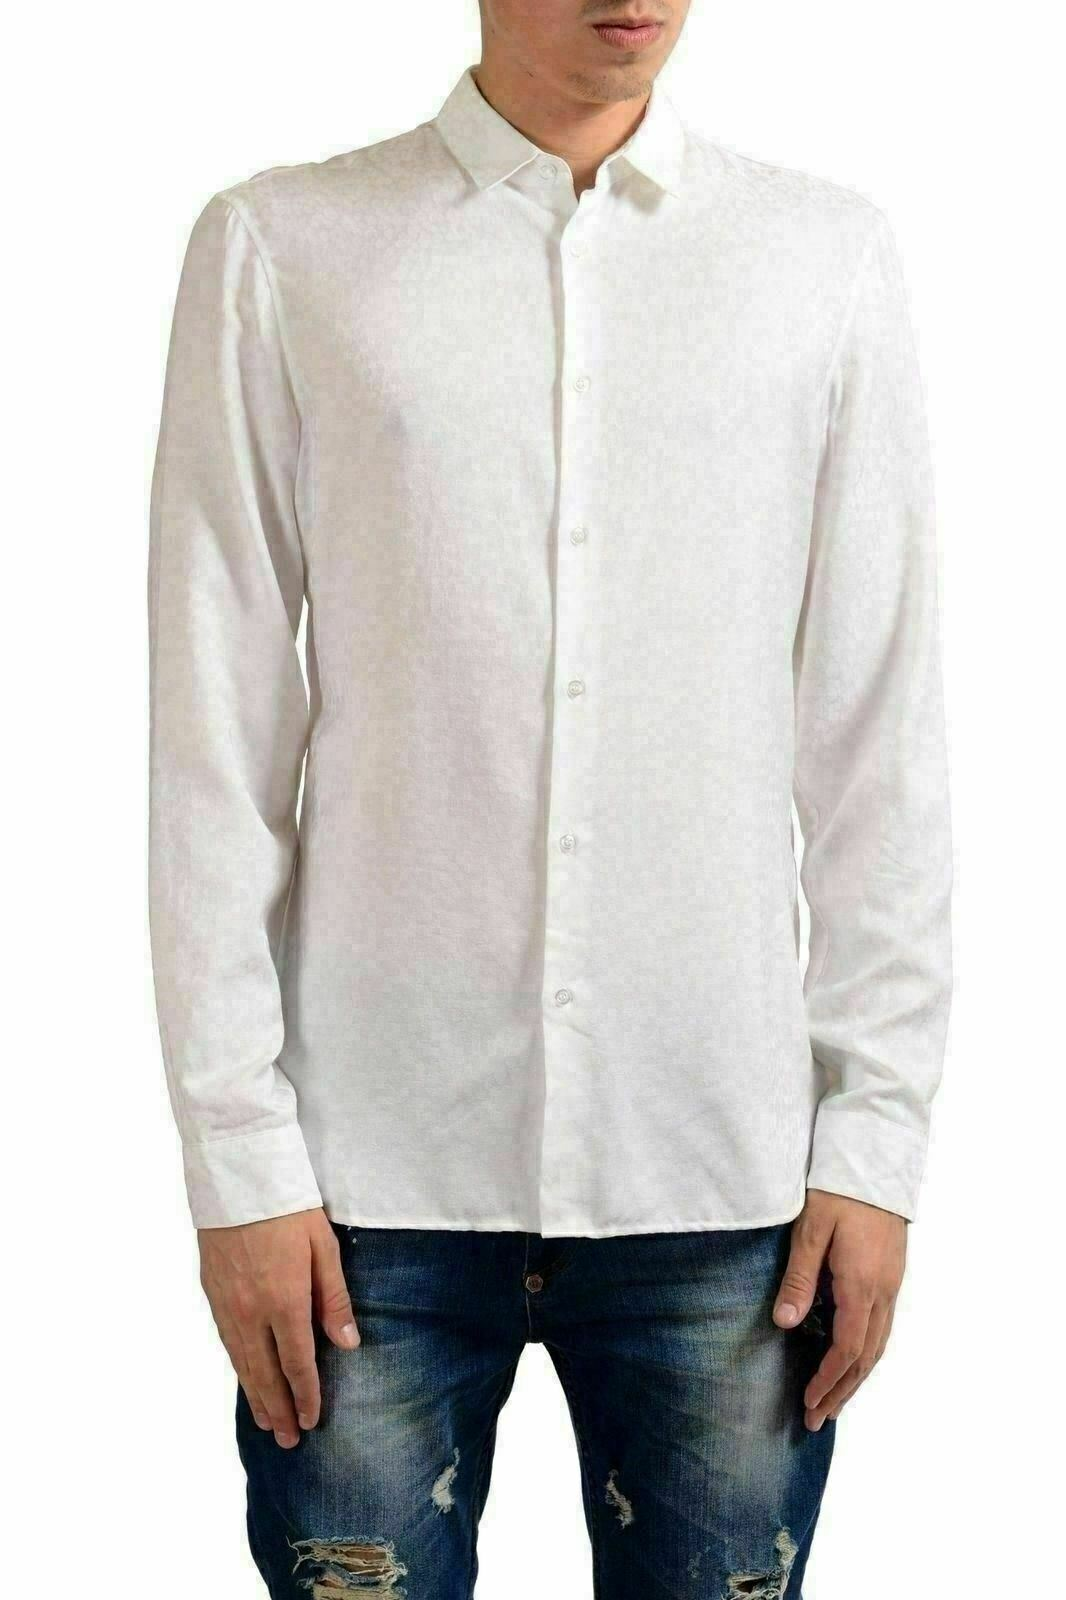 Just Cavalli White Long Sleeve Button Front Men's Casual Shirt US S IT 48